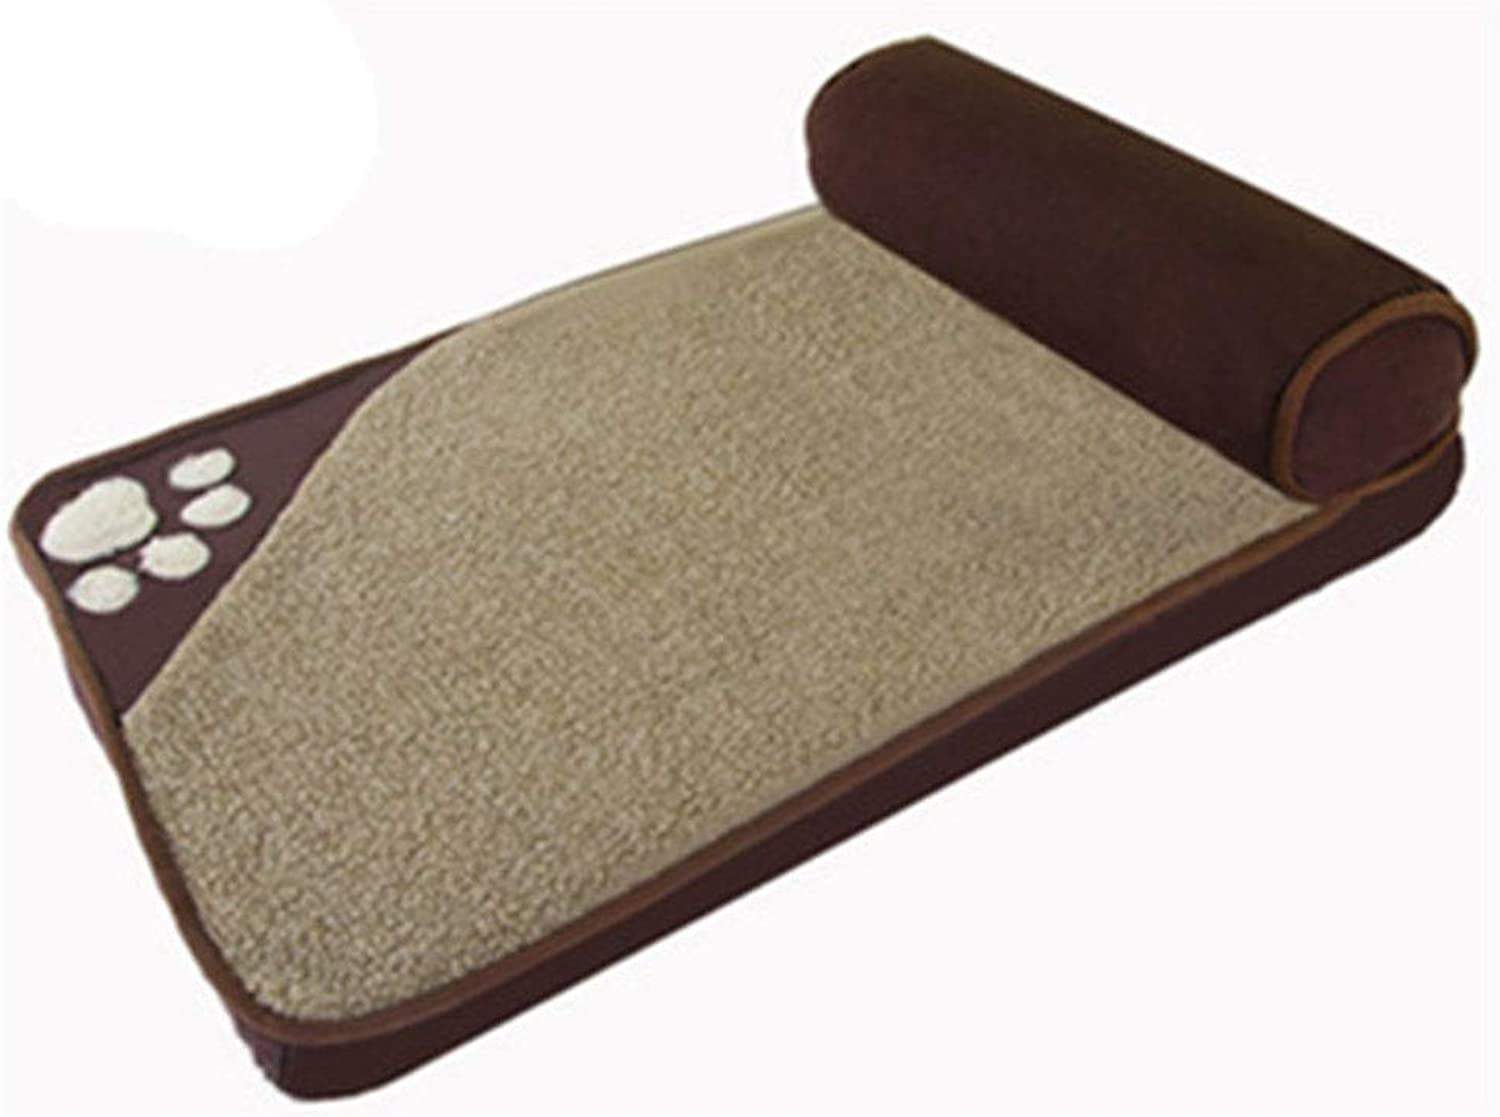 Fine Joy Dog Beds, for Large Dogs House Sofa Kennel Square Pillow Husky Labrador Teddy Cat House Beds Mat,Brown,S